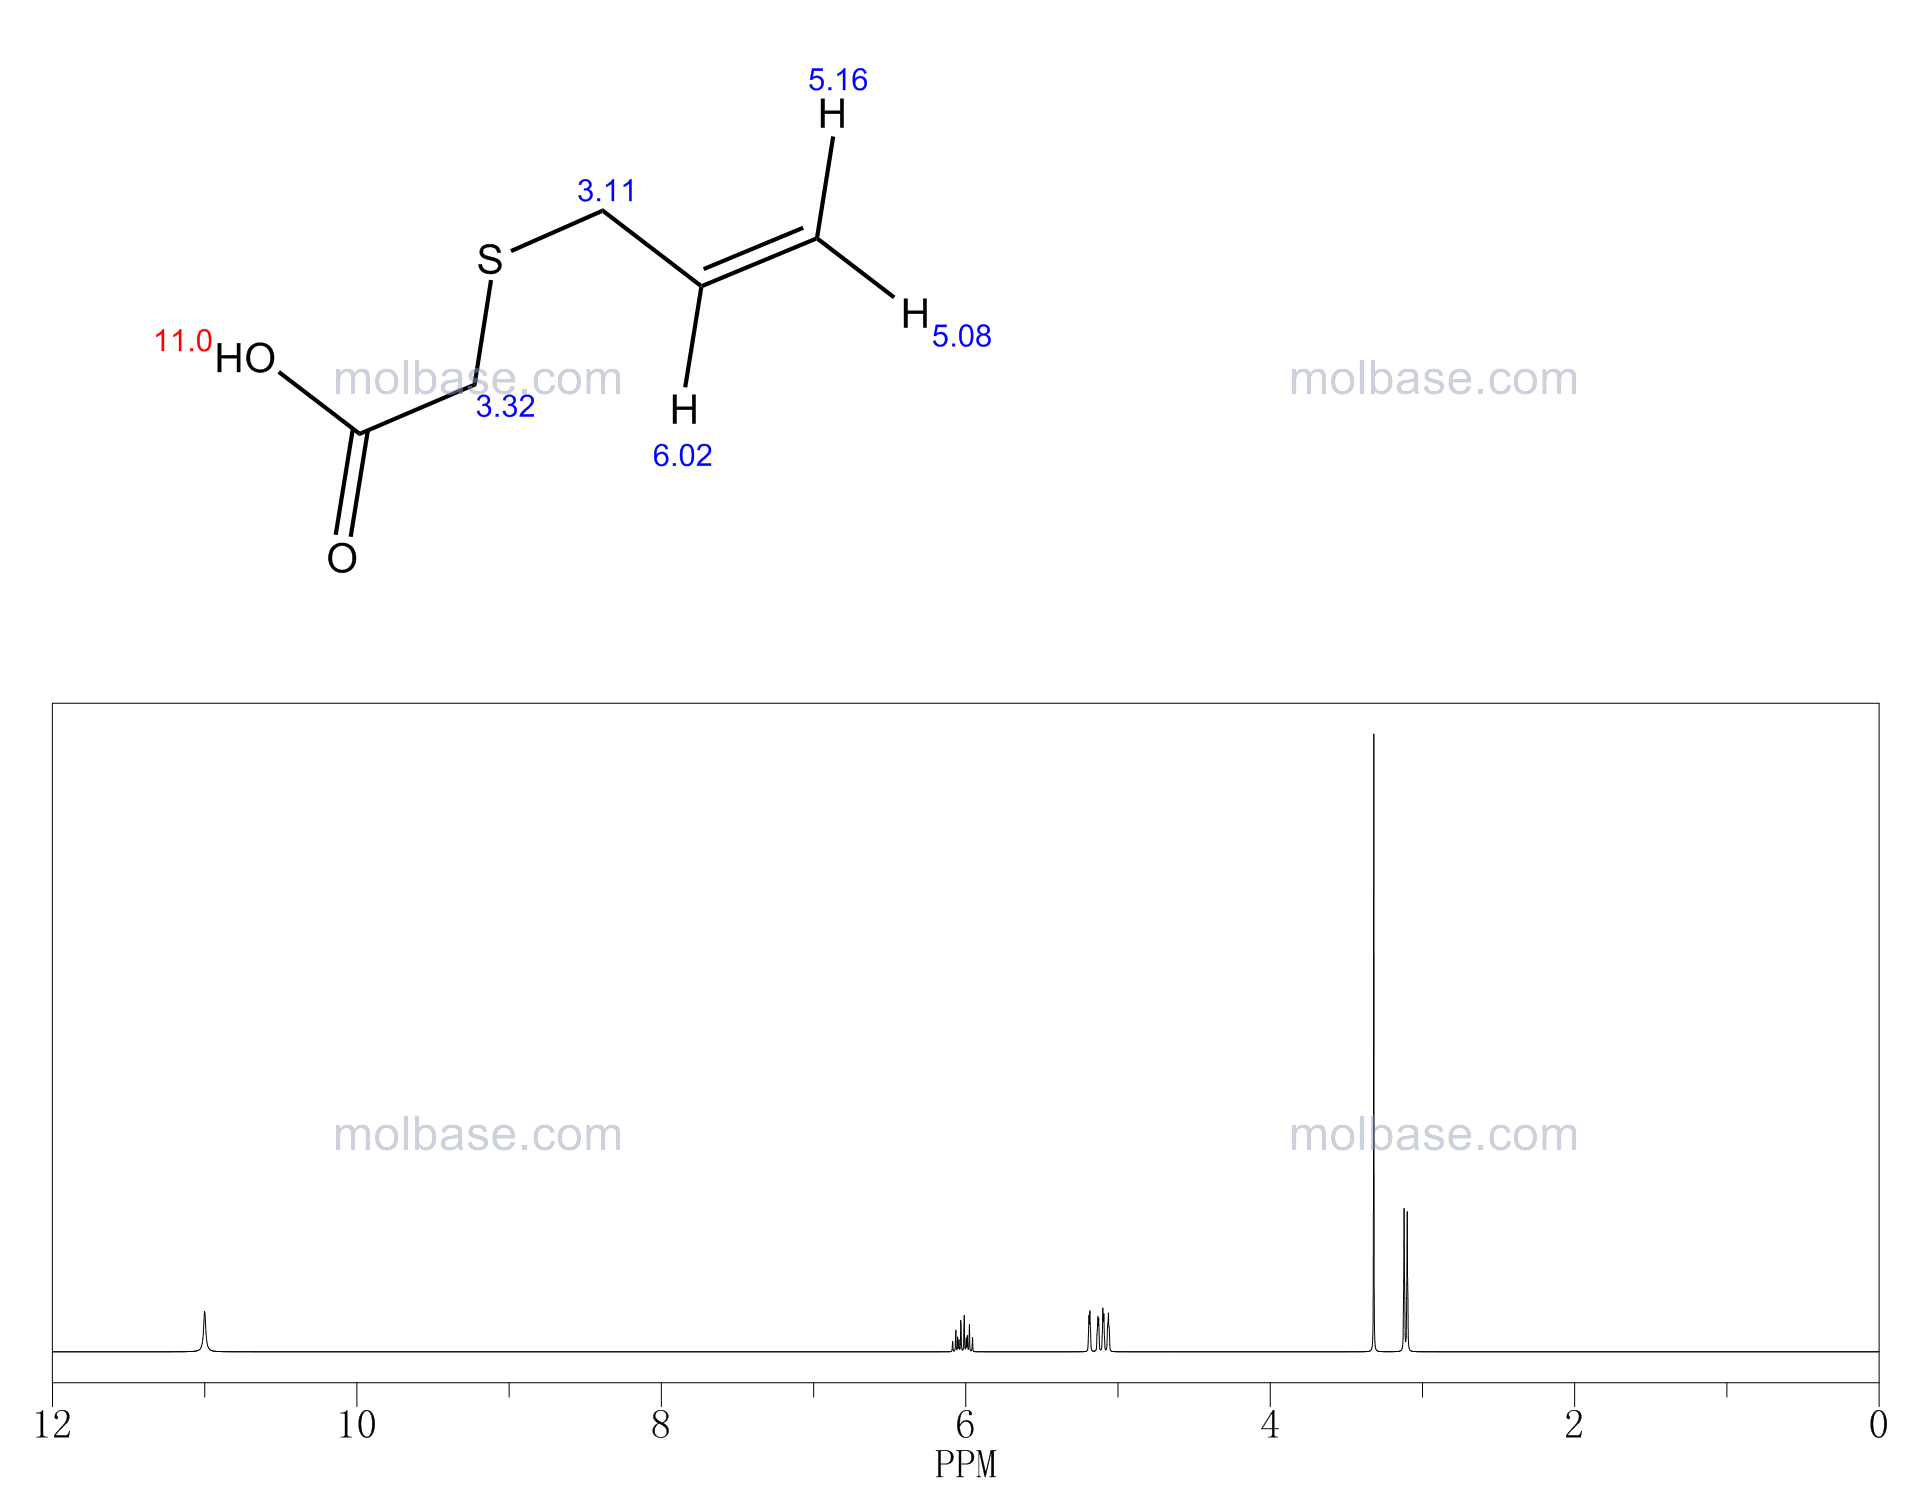 2-prop-2-enylsulfanylacetic acid NMR spectra analysis, Chemical CAS NO. 20600-63-9 NMR spectral analysis, 2-prop-2-enylsulfanylacetic acid C-NMR spectrum